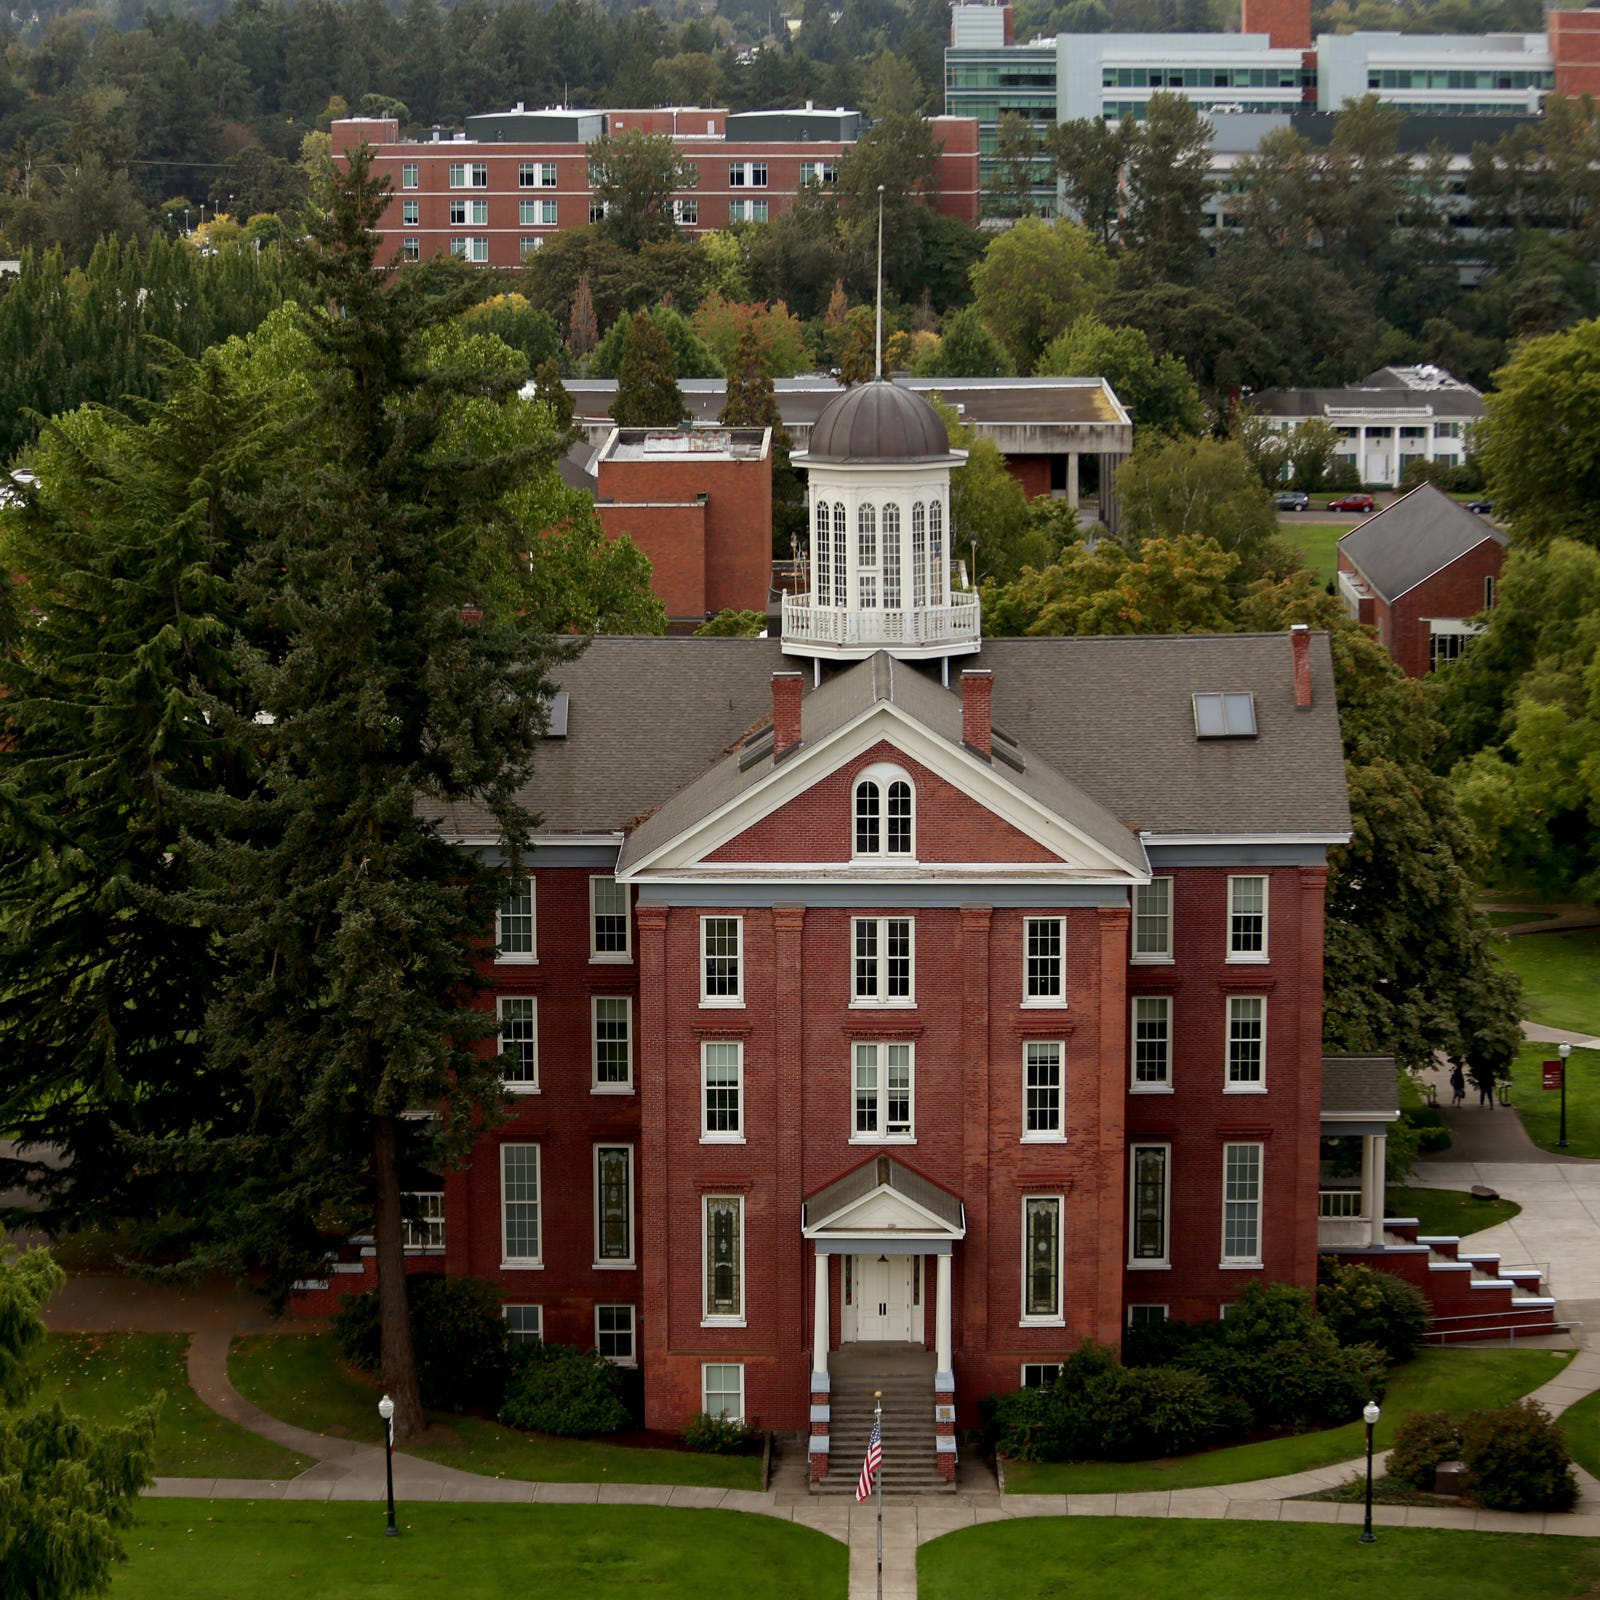 Willamette University revenue slump puts pressure on endowment fund